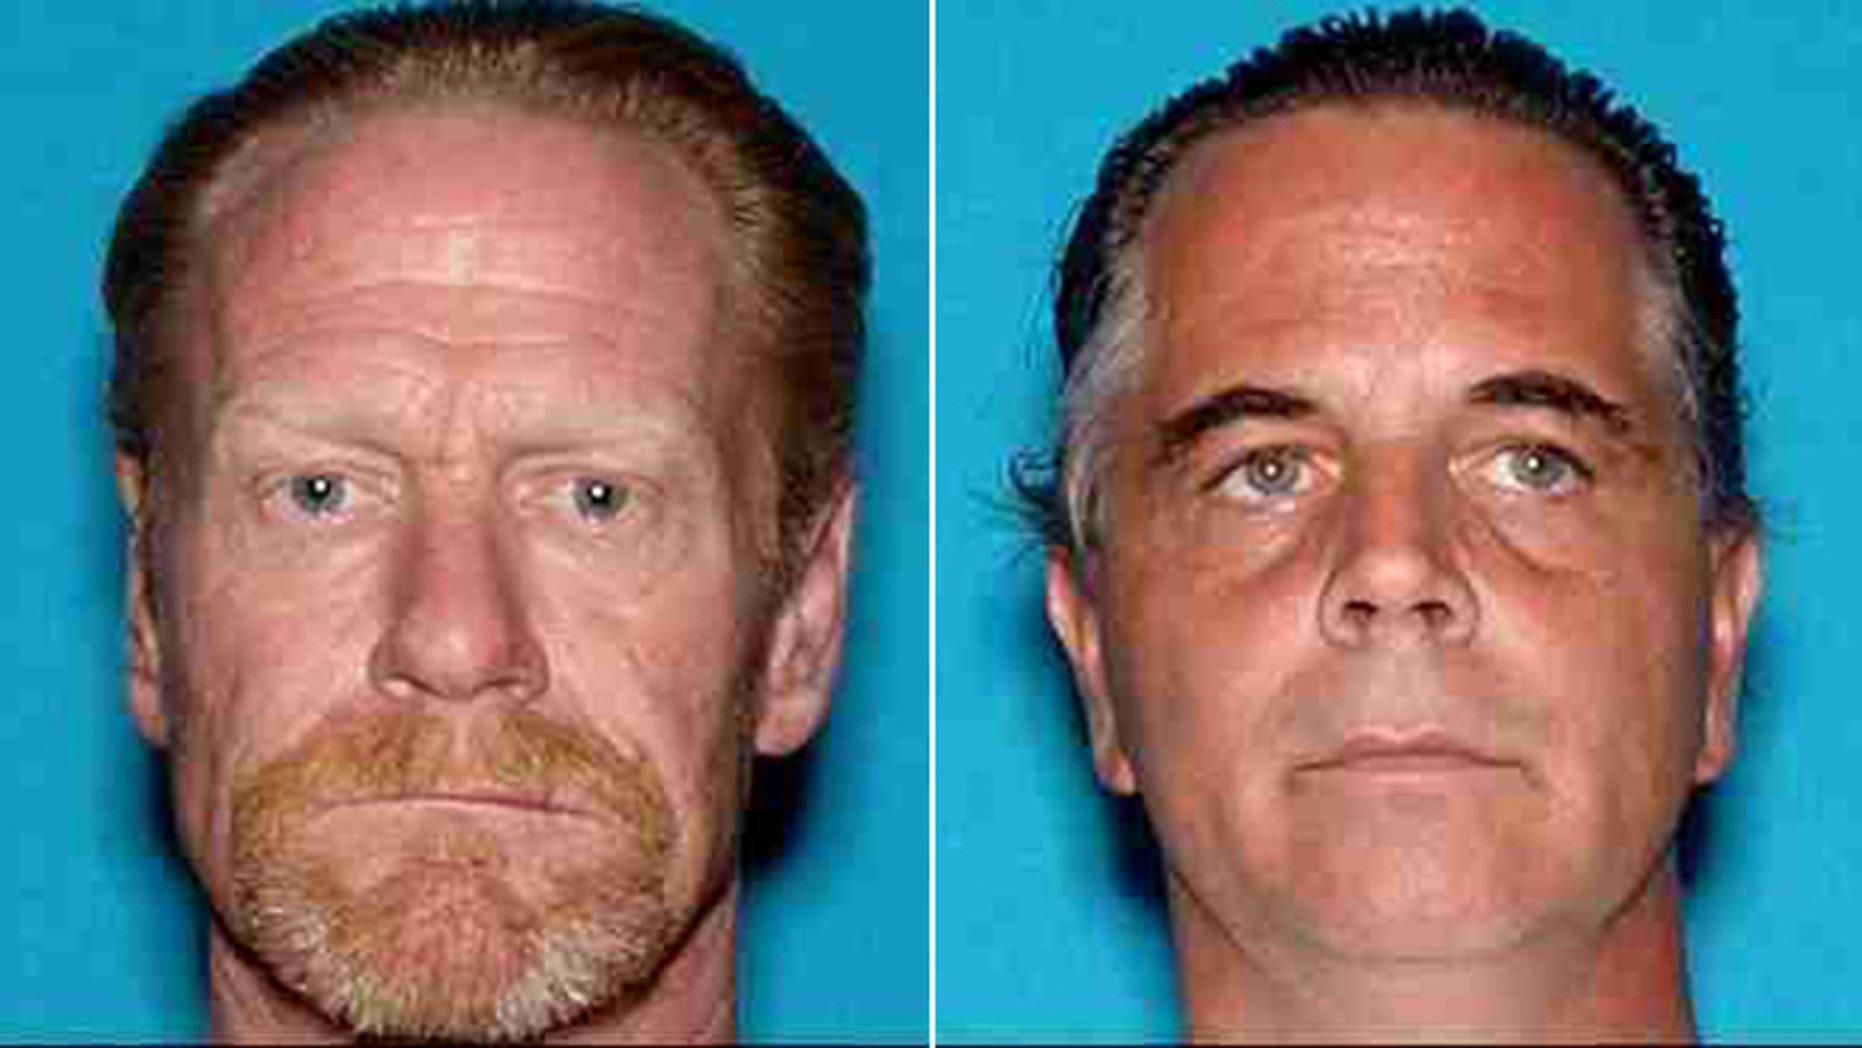 This image provided by the Siskiyou County Sheriff's office shows Scott Wayne Bailey and David Dean Johnson.